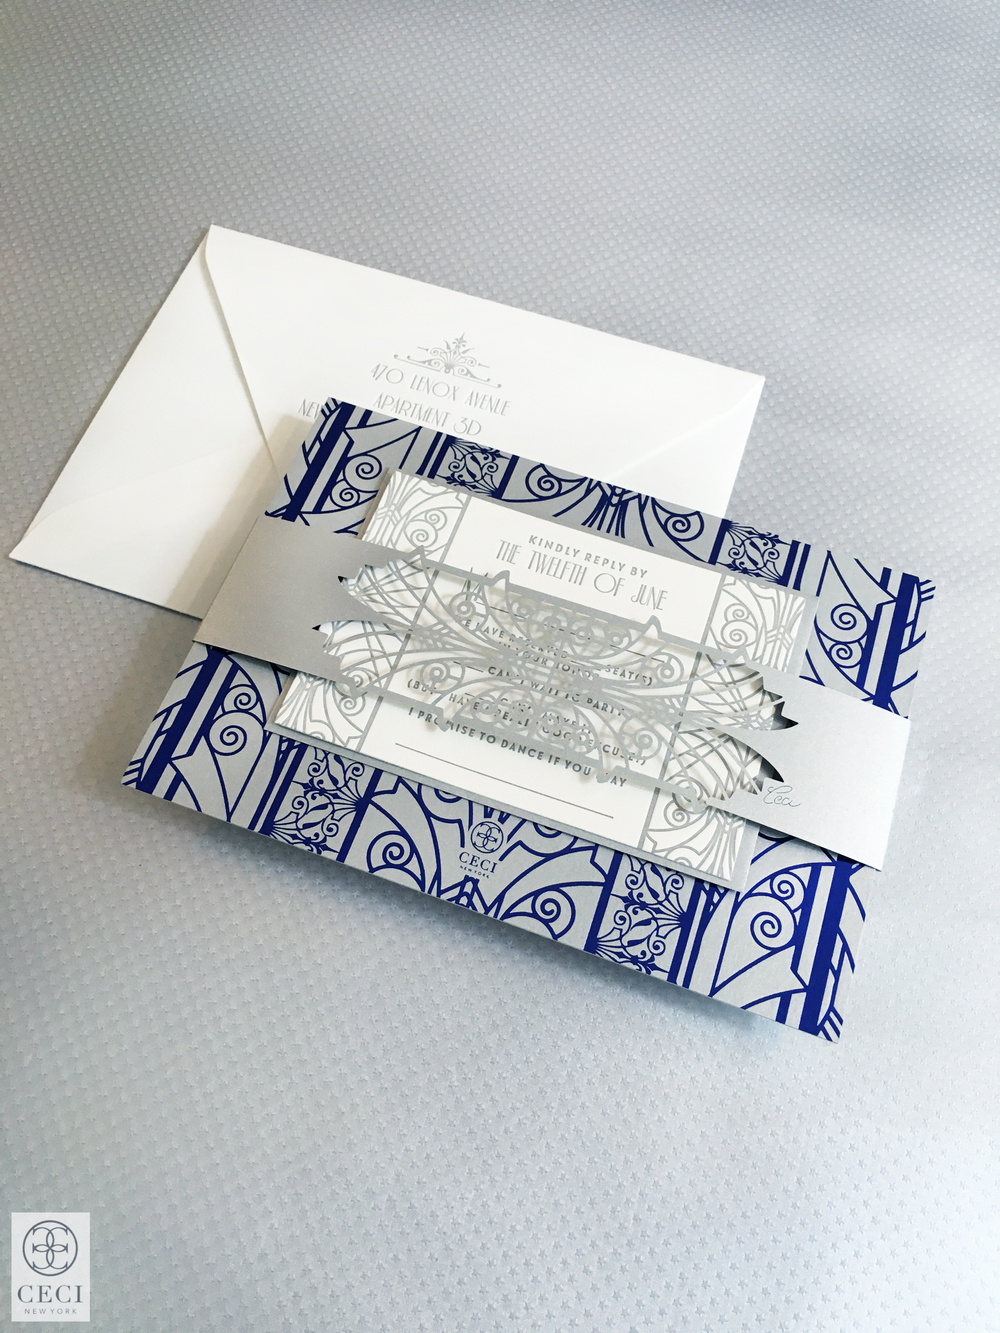 Ceci_New_York_New_Jersey_Invitations_Wedding_New_York_Elegance_Silver_Blue_Letterpress_Deco_Classic_Foil_Stamping_Custom_Couture_Personalized-164.jpg